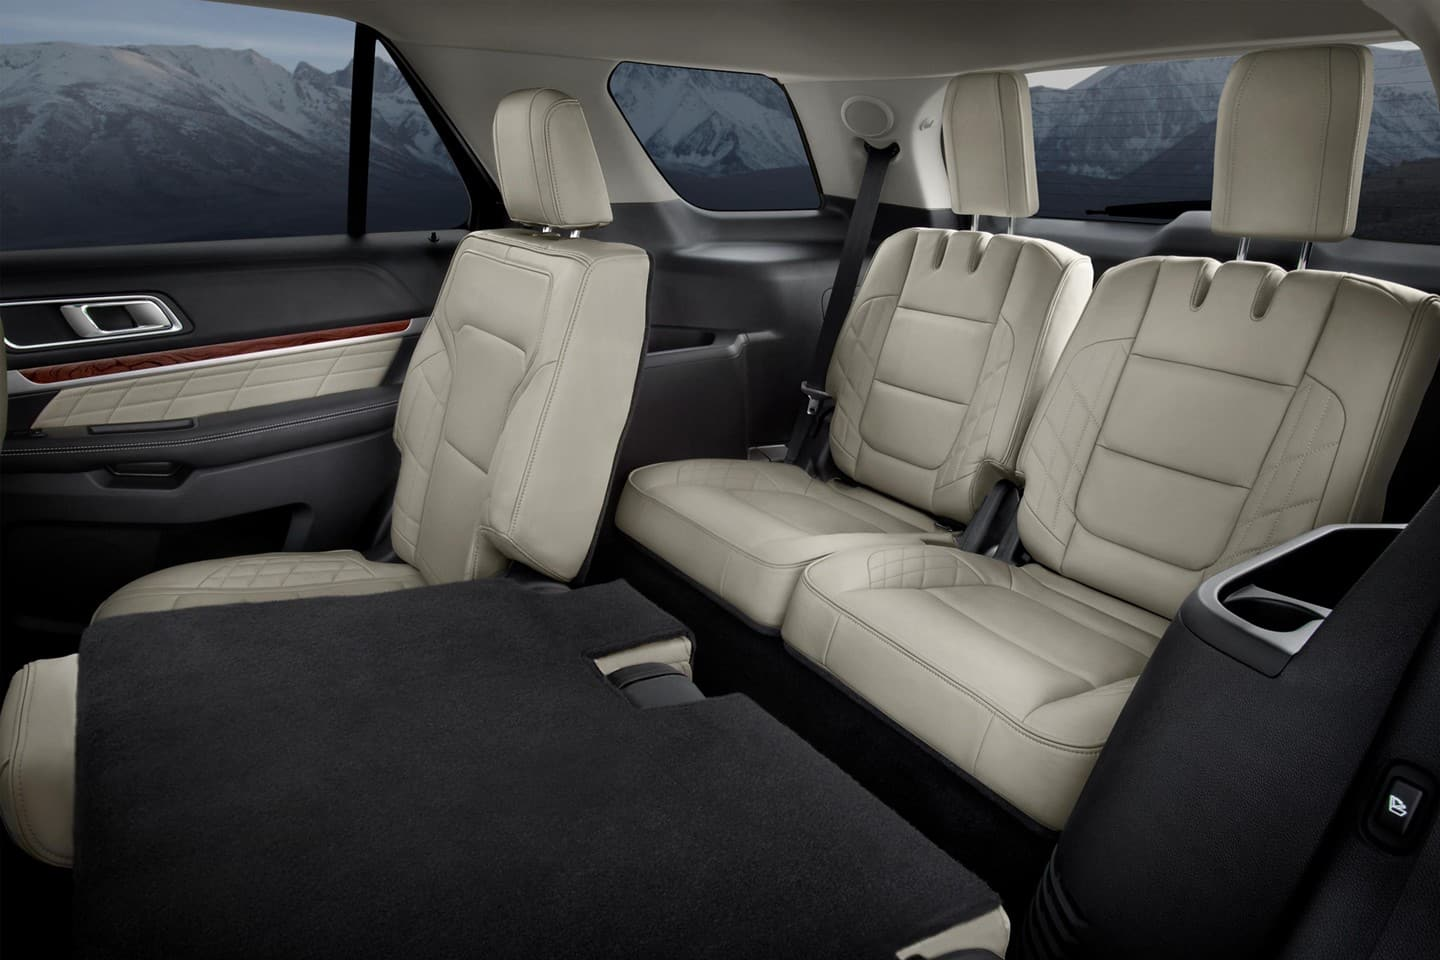 2019 Ford Explorer Rear-Row Seating